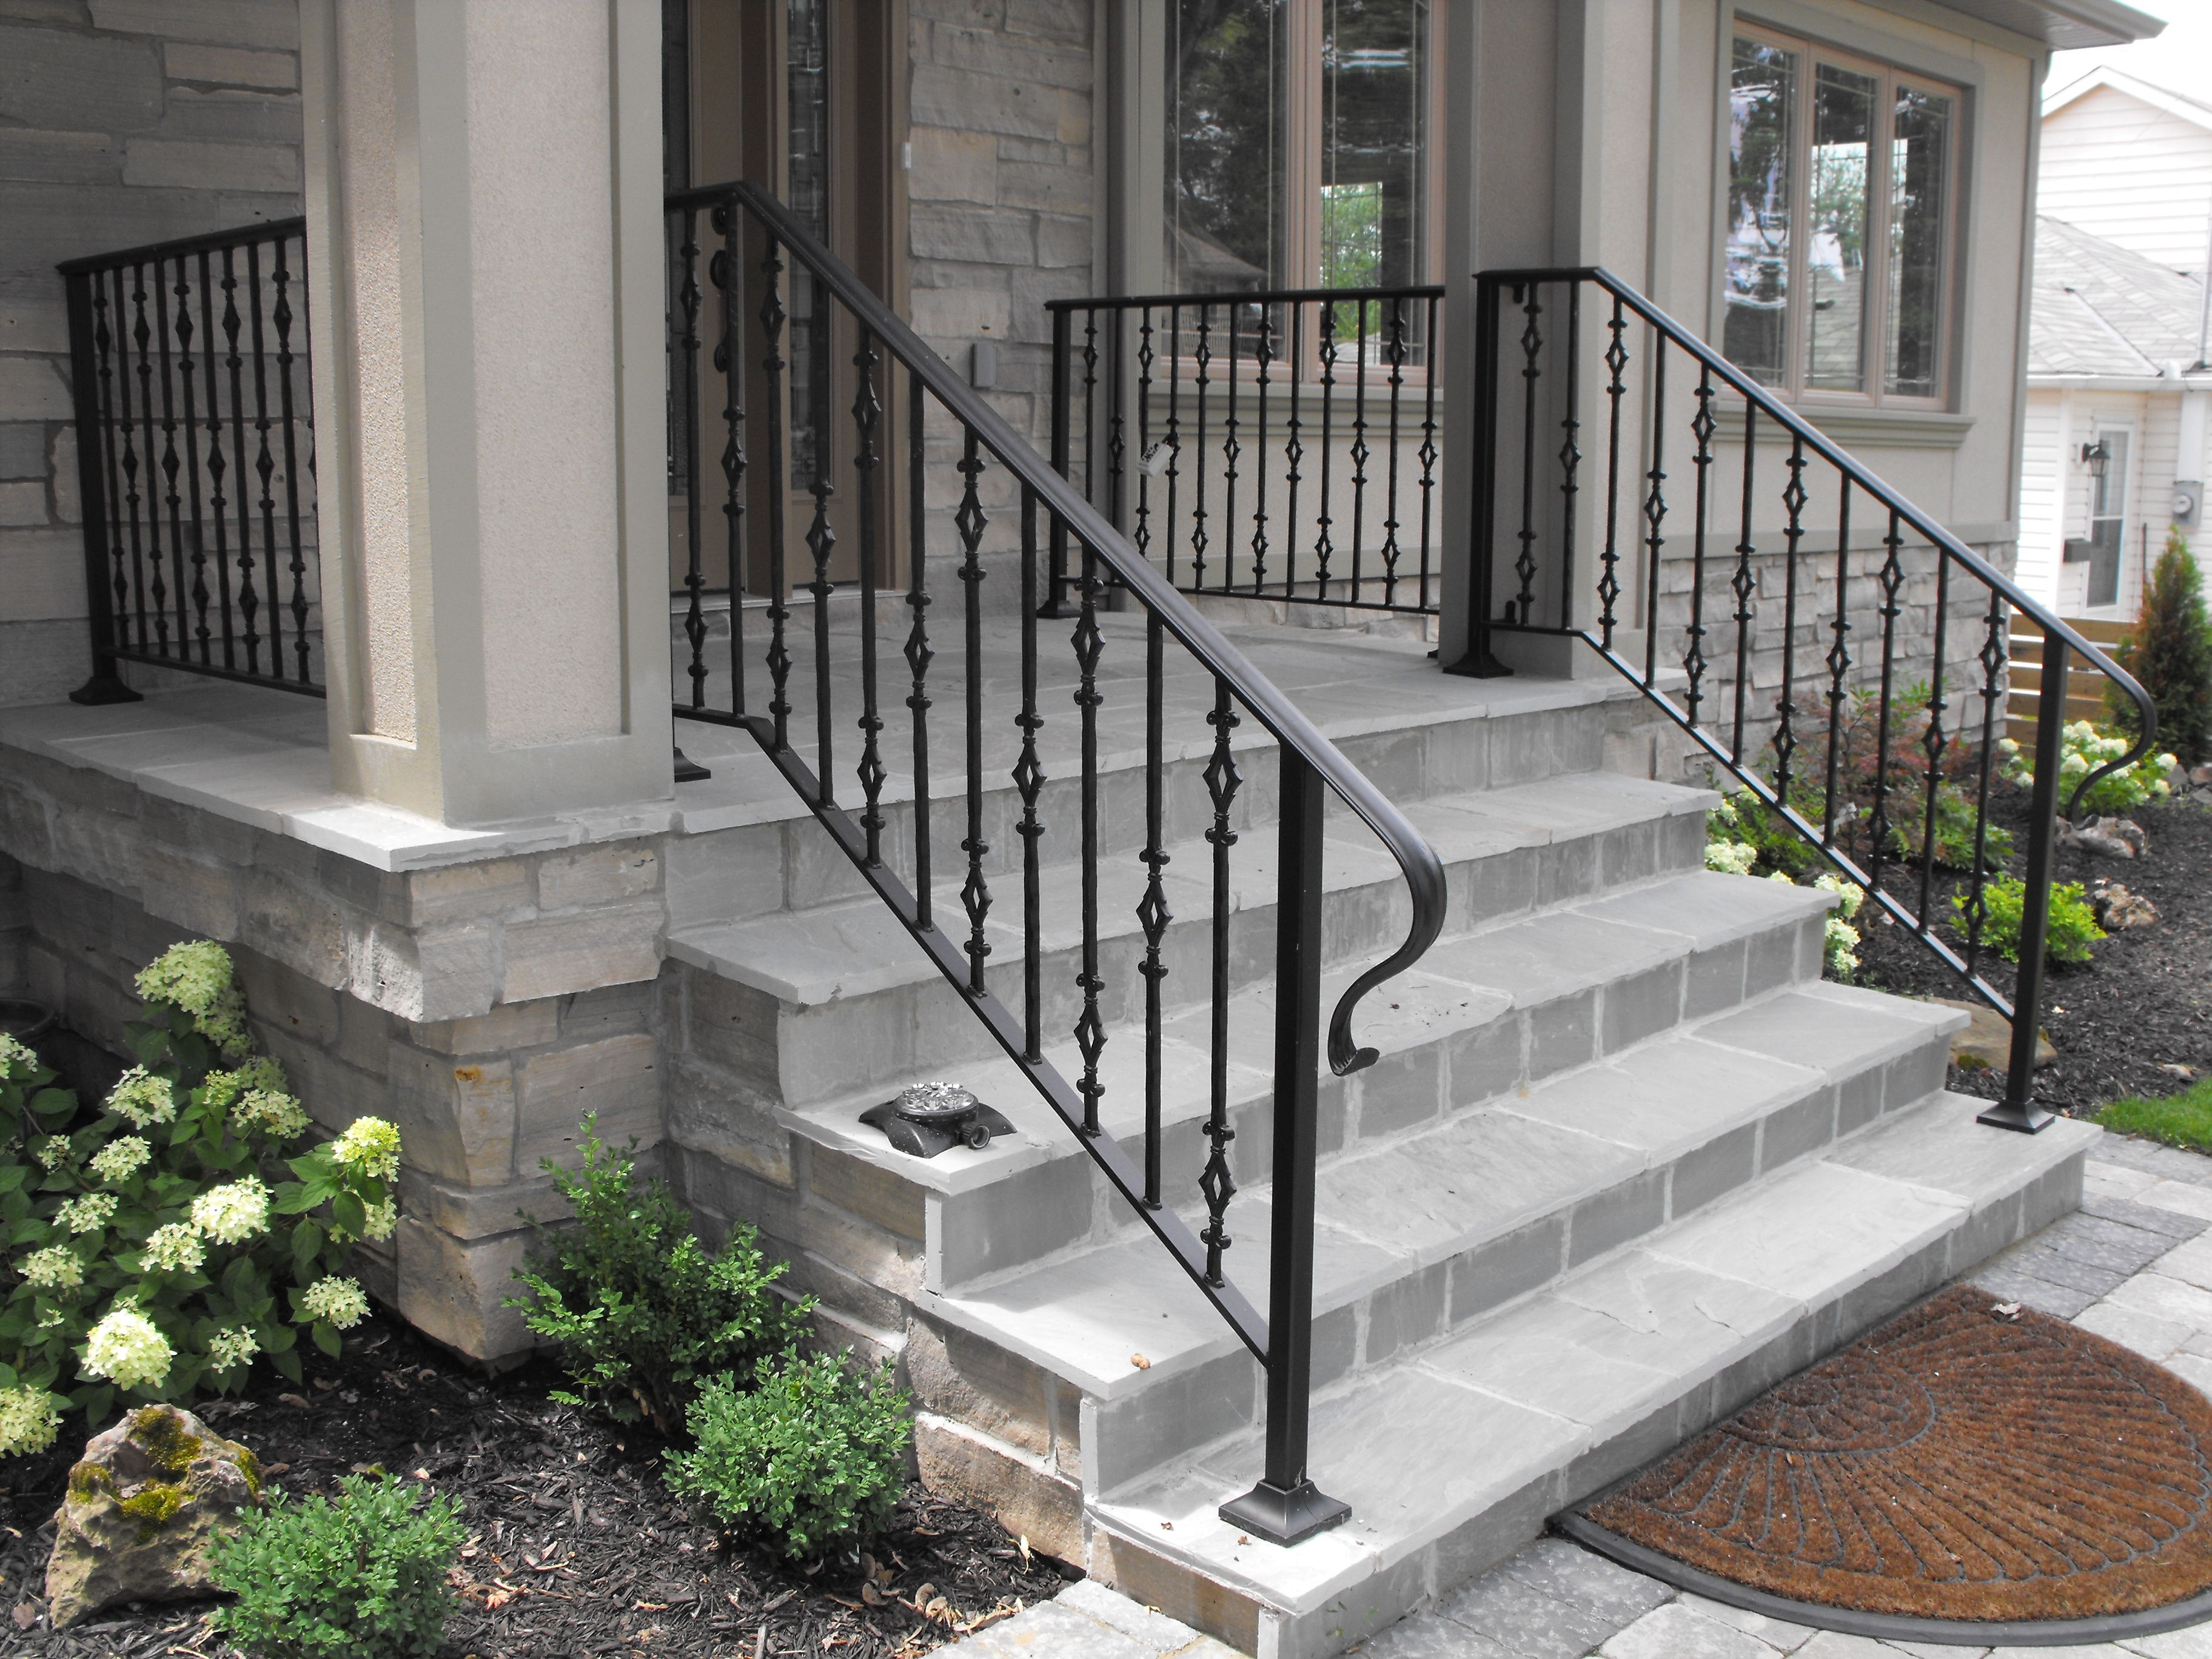 Residential Laurcoat Railings Outdoor Iron Railings Outdoor | Front Porch Stair Railing | Wood | Style Cape Cod | Modern | Simple | Patio